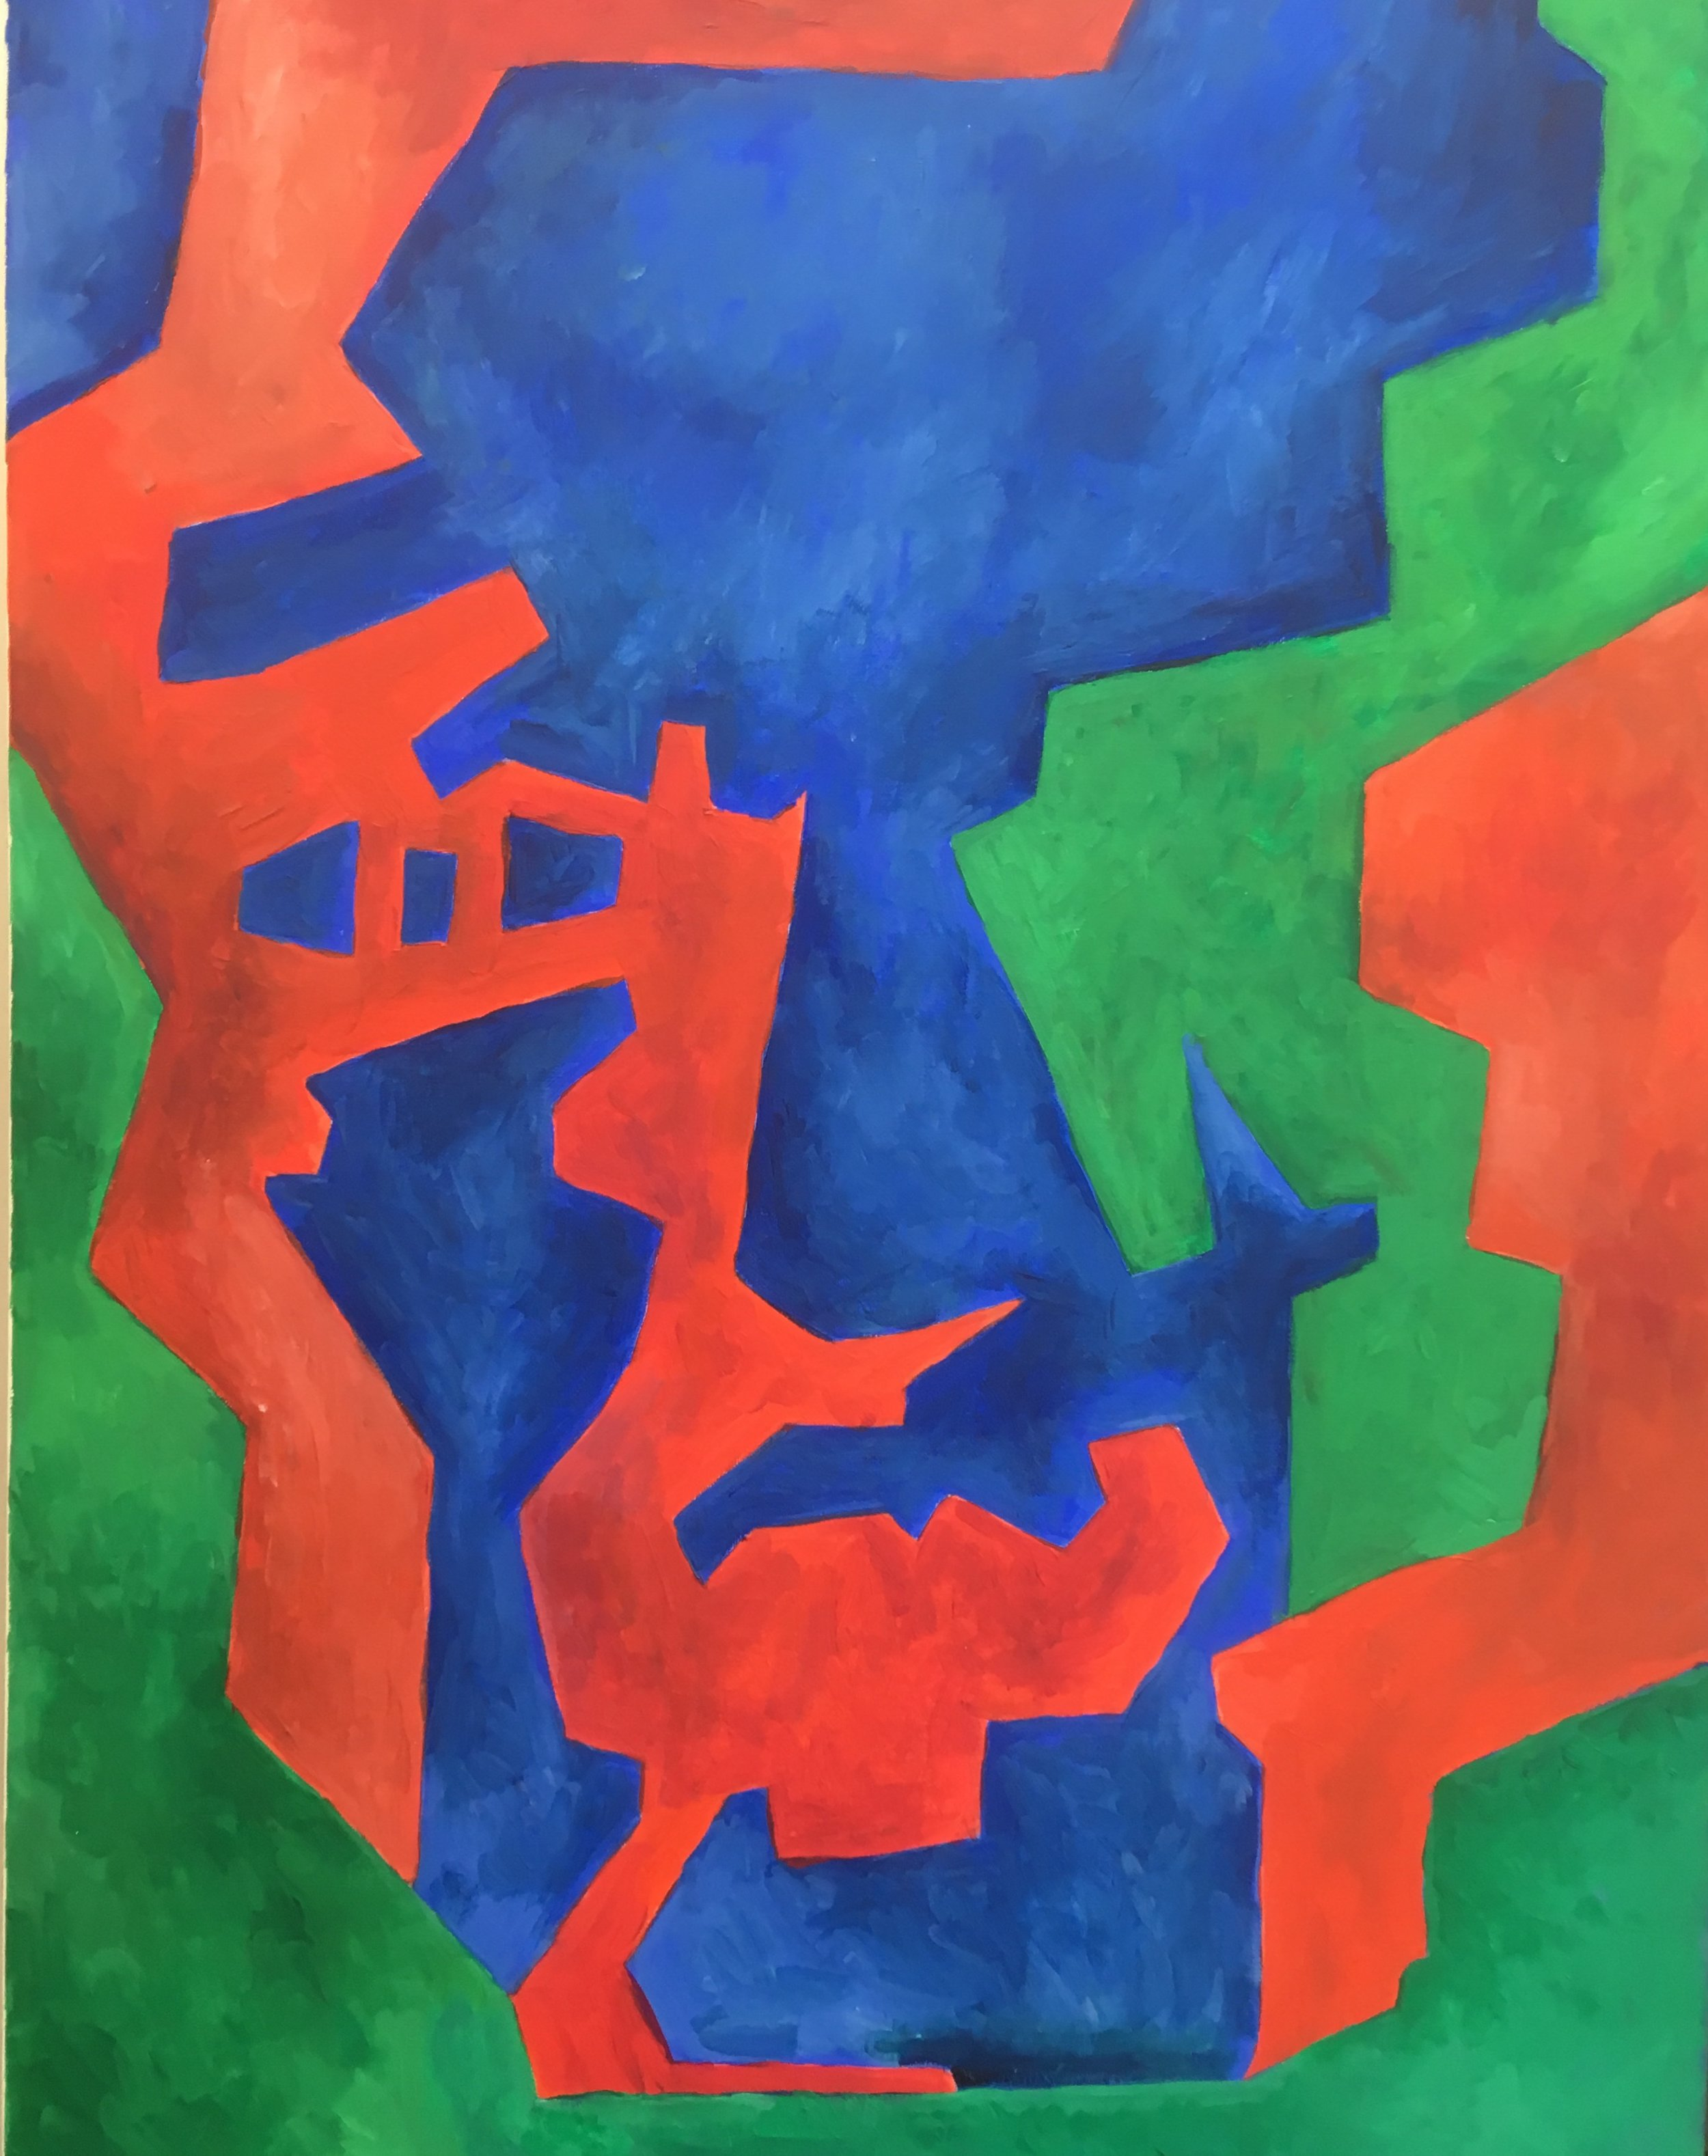 self portrait drift  acrylic on canvas  £950  60 by 80 by 1.5 cm  unframed